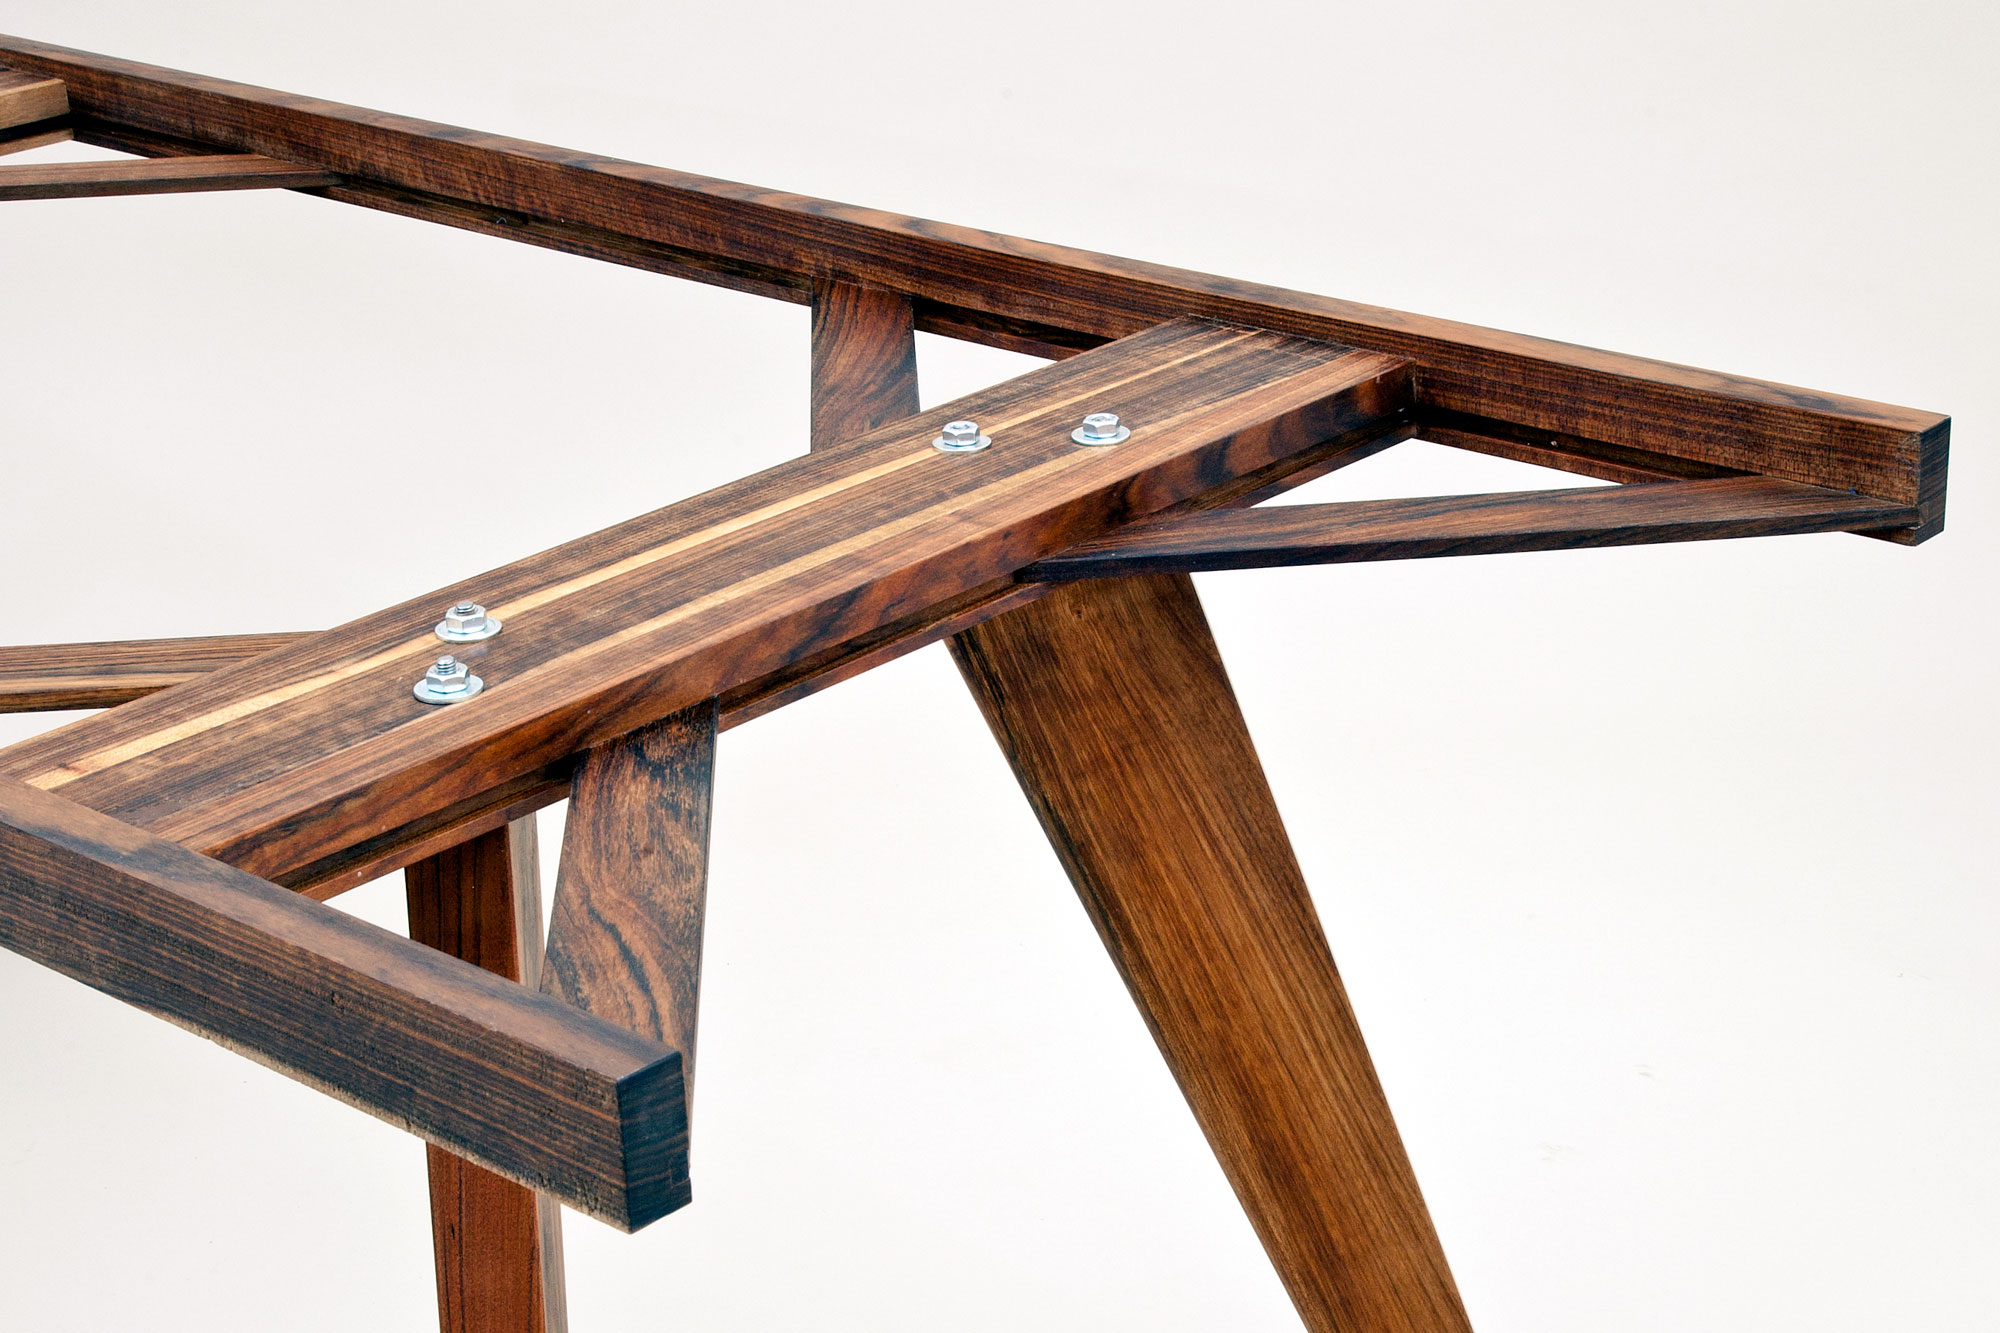 000-morgen-kollektion-bridge-table-4